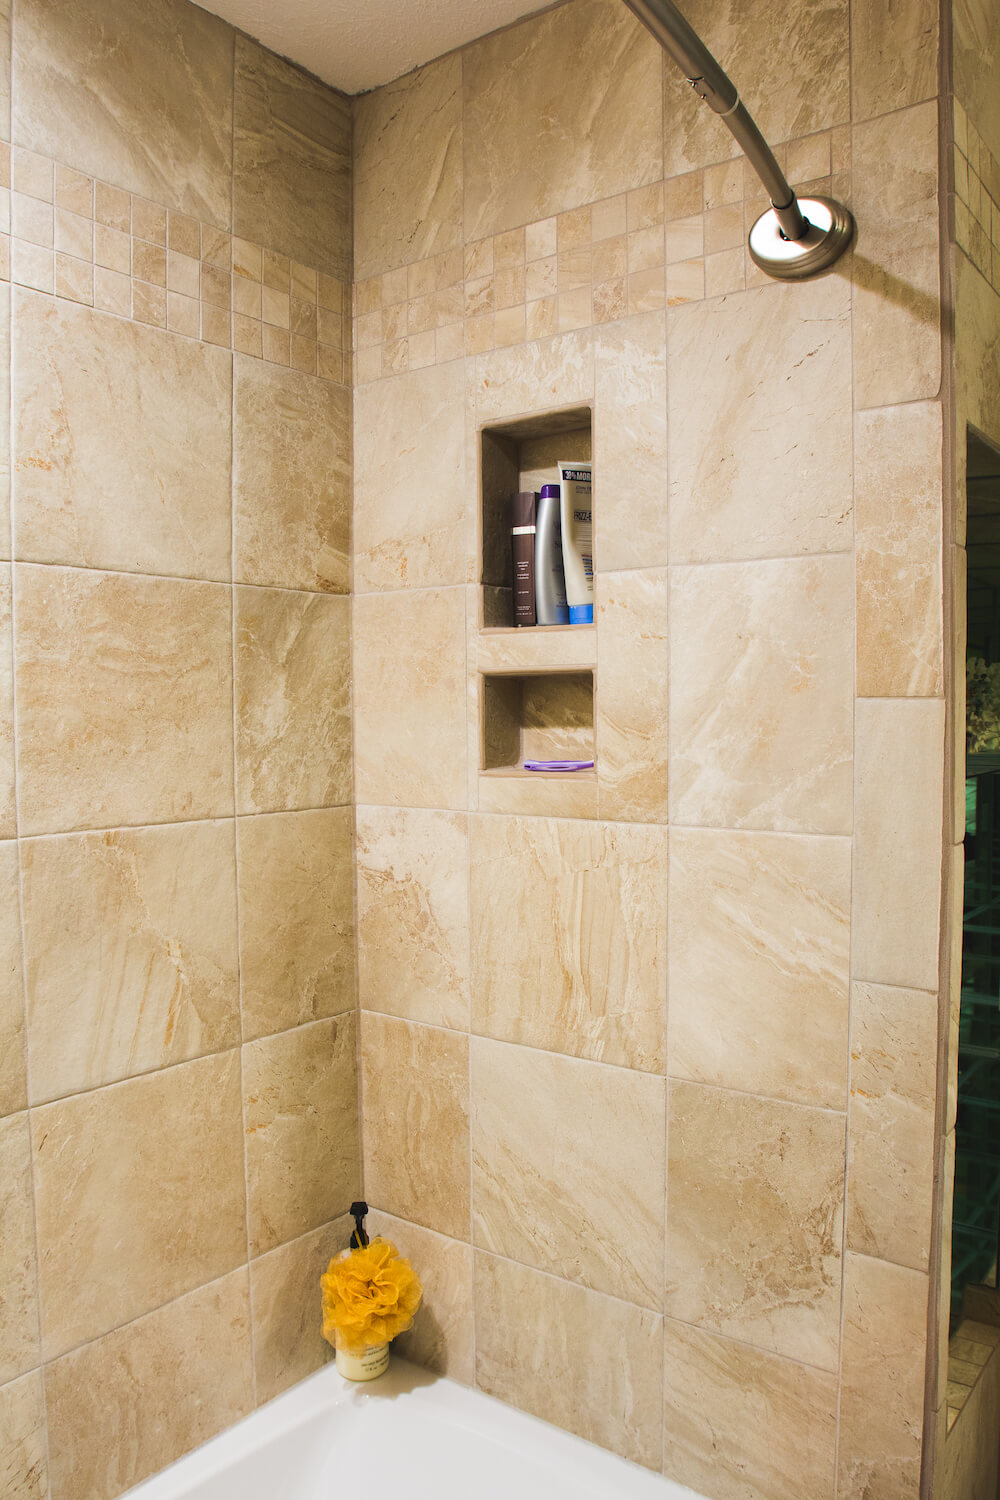 cost to tile small bathroom 2018 regrouting shower tile cost regrout shower price 23032